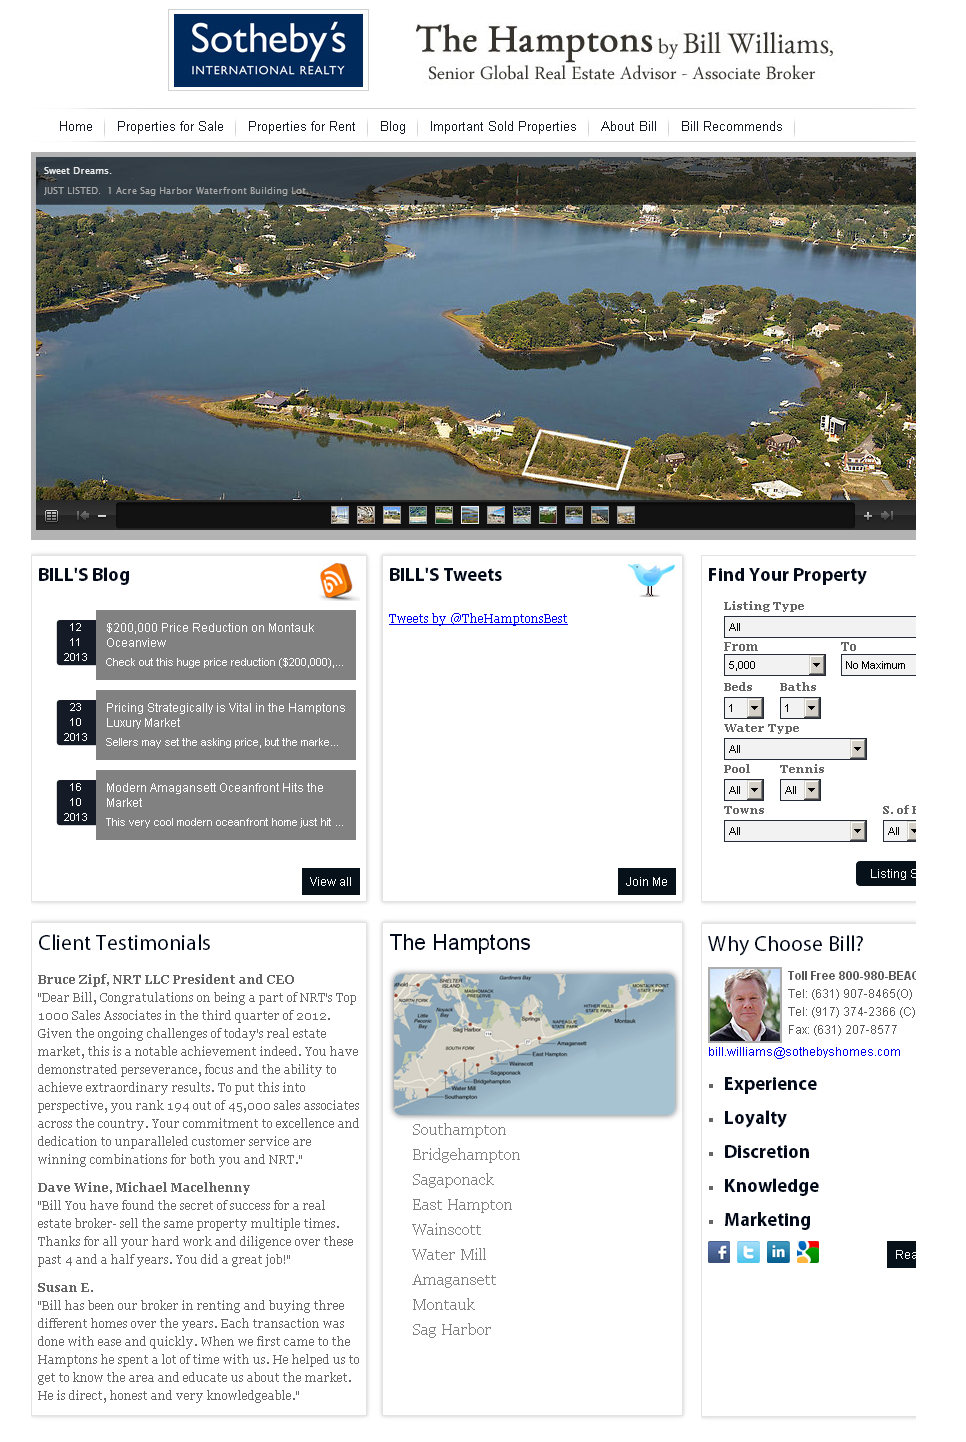 Development of Joomla Based Real Estate Website - Bill Williams Realty